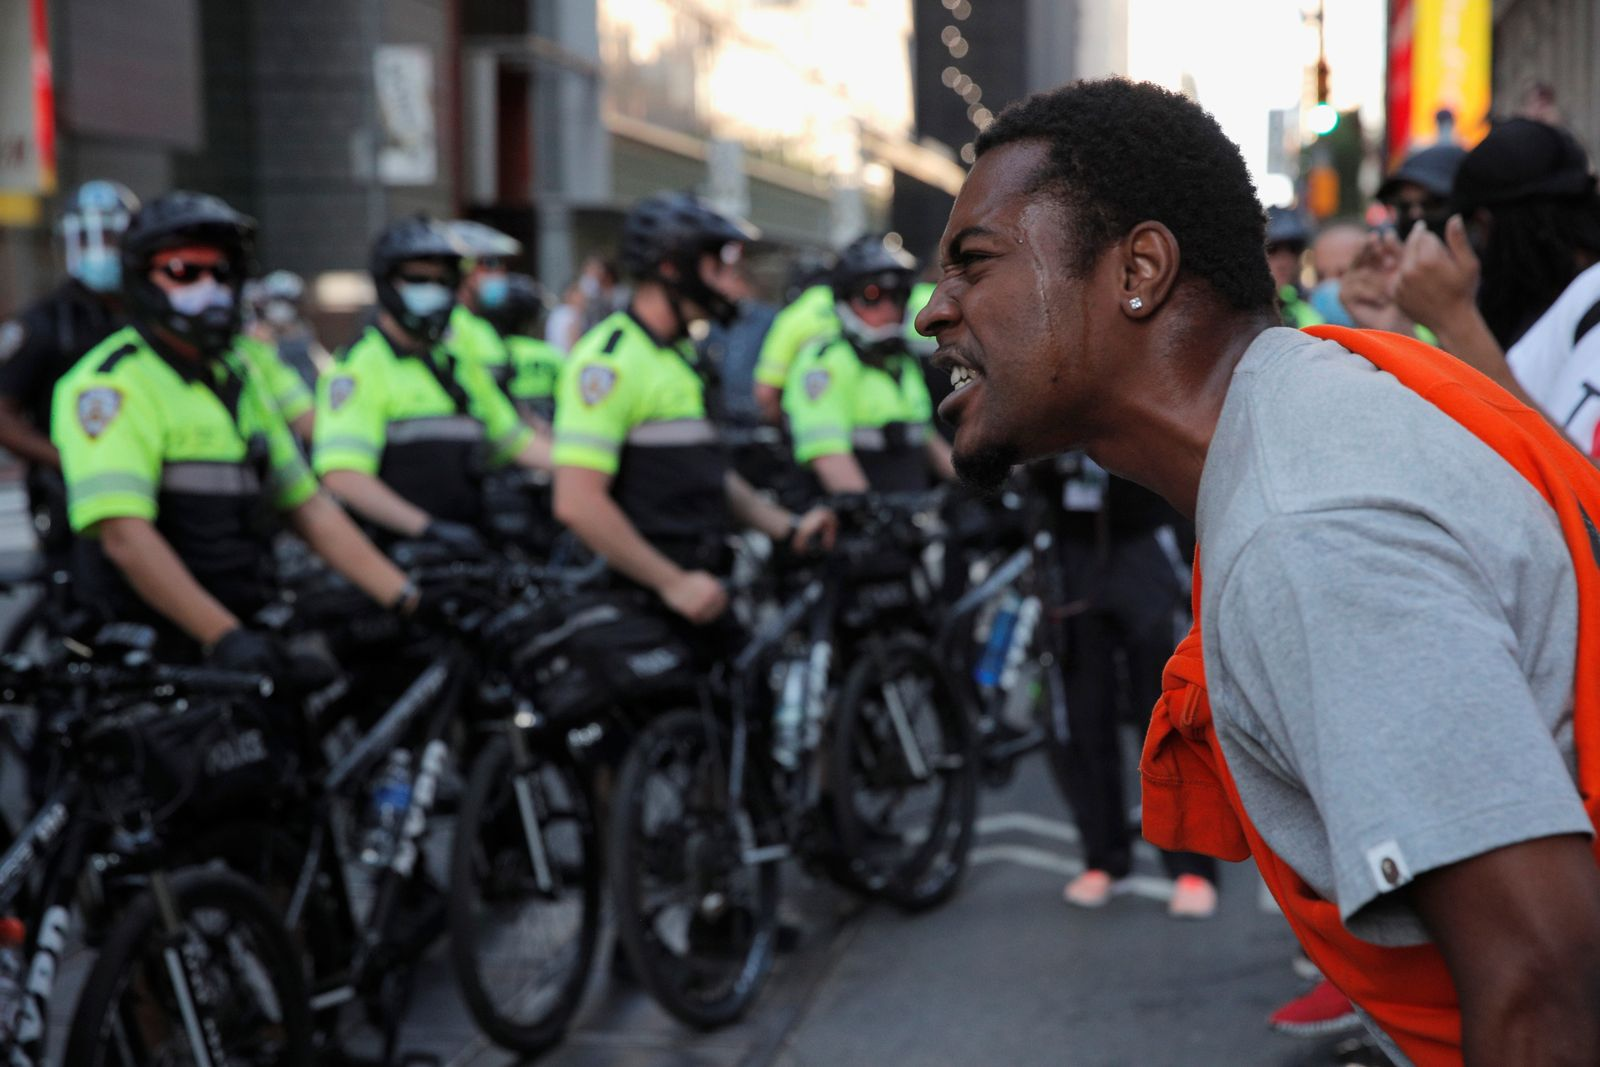 Protesters rally against the death in Minneapolis police custody of George Floyd